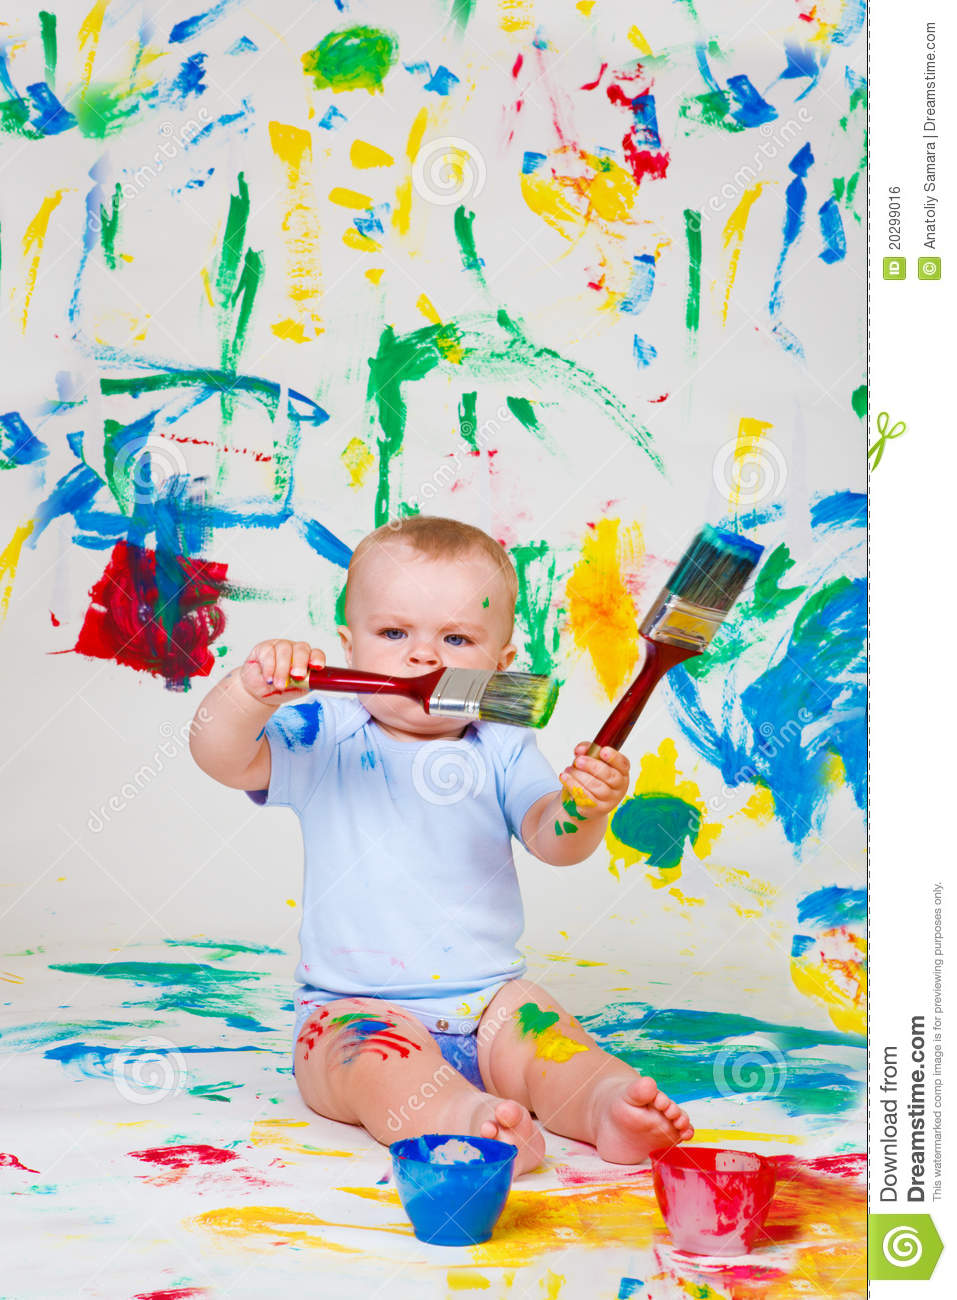 Baby playing with paintbrushes